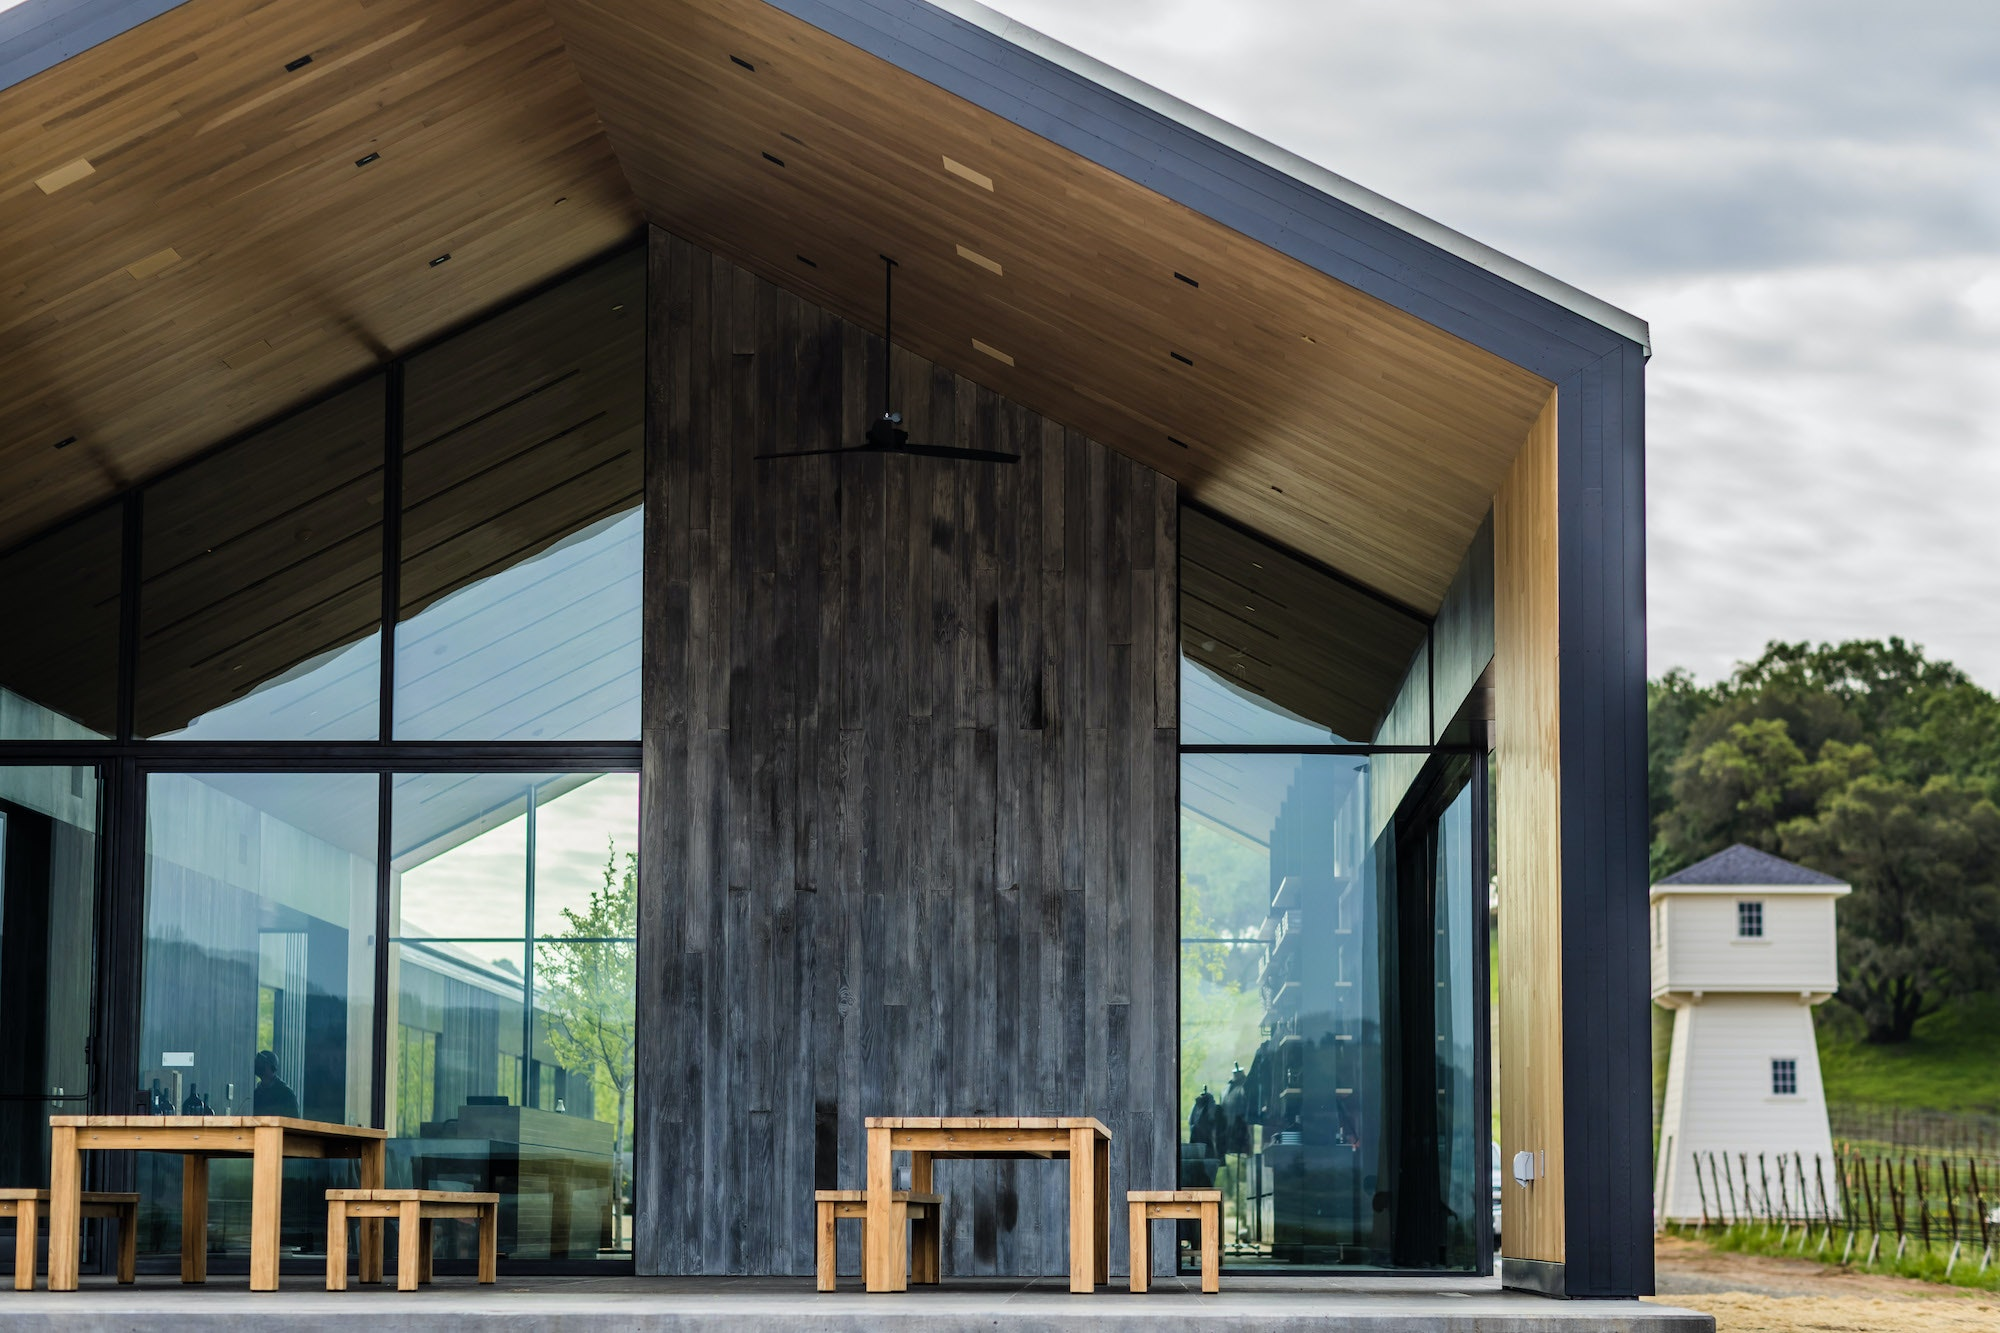 Salvaged materials are the star of the show: The Silver Oak team used felled oak trees for floors and repurposed 1930s-era redwood wine tanks as exterior siding.